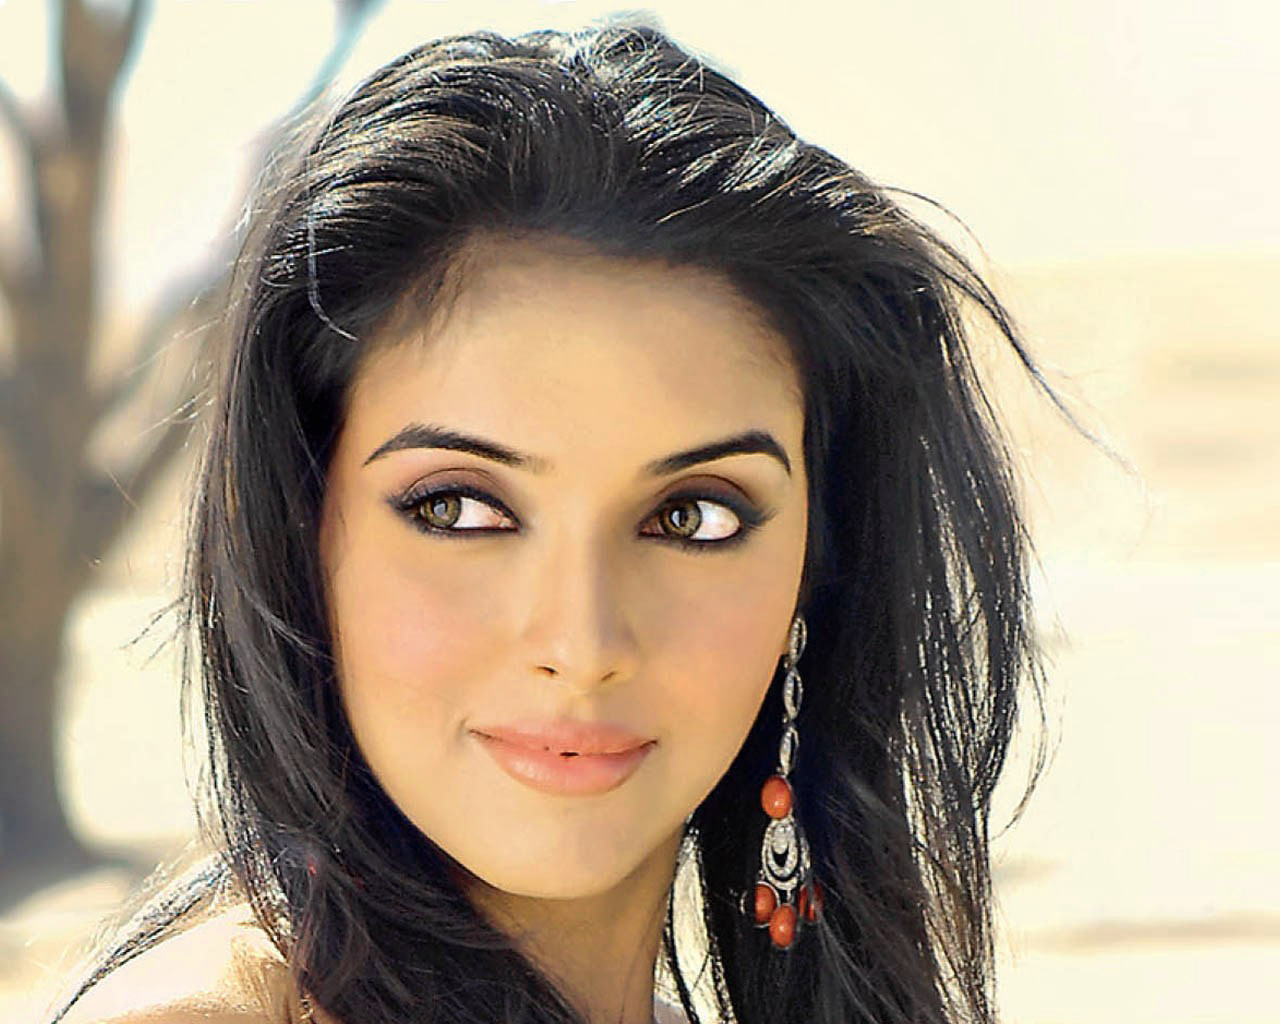 Beautiful Asin images Wallpaper Asin images 1 (11)